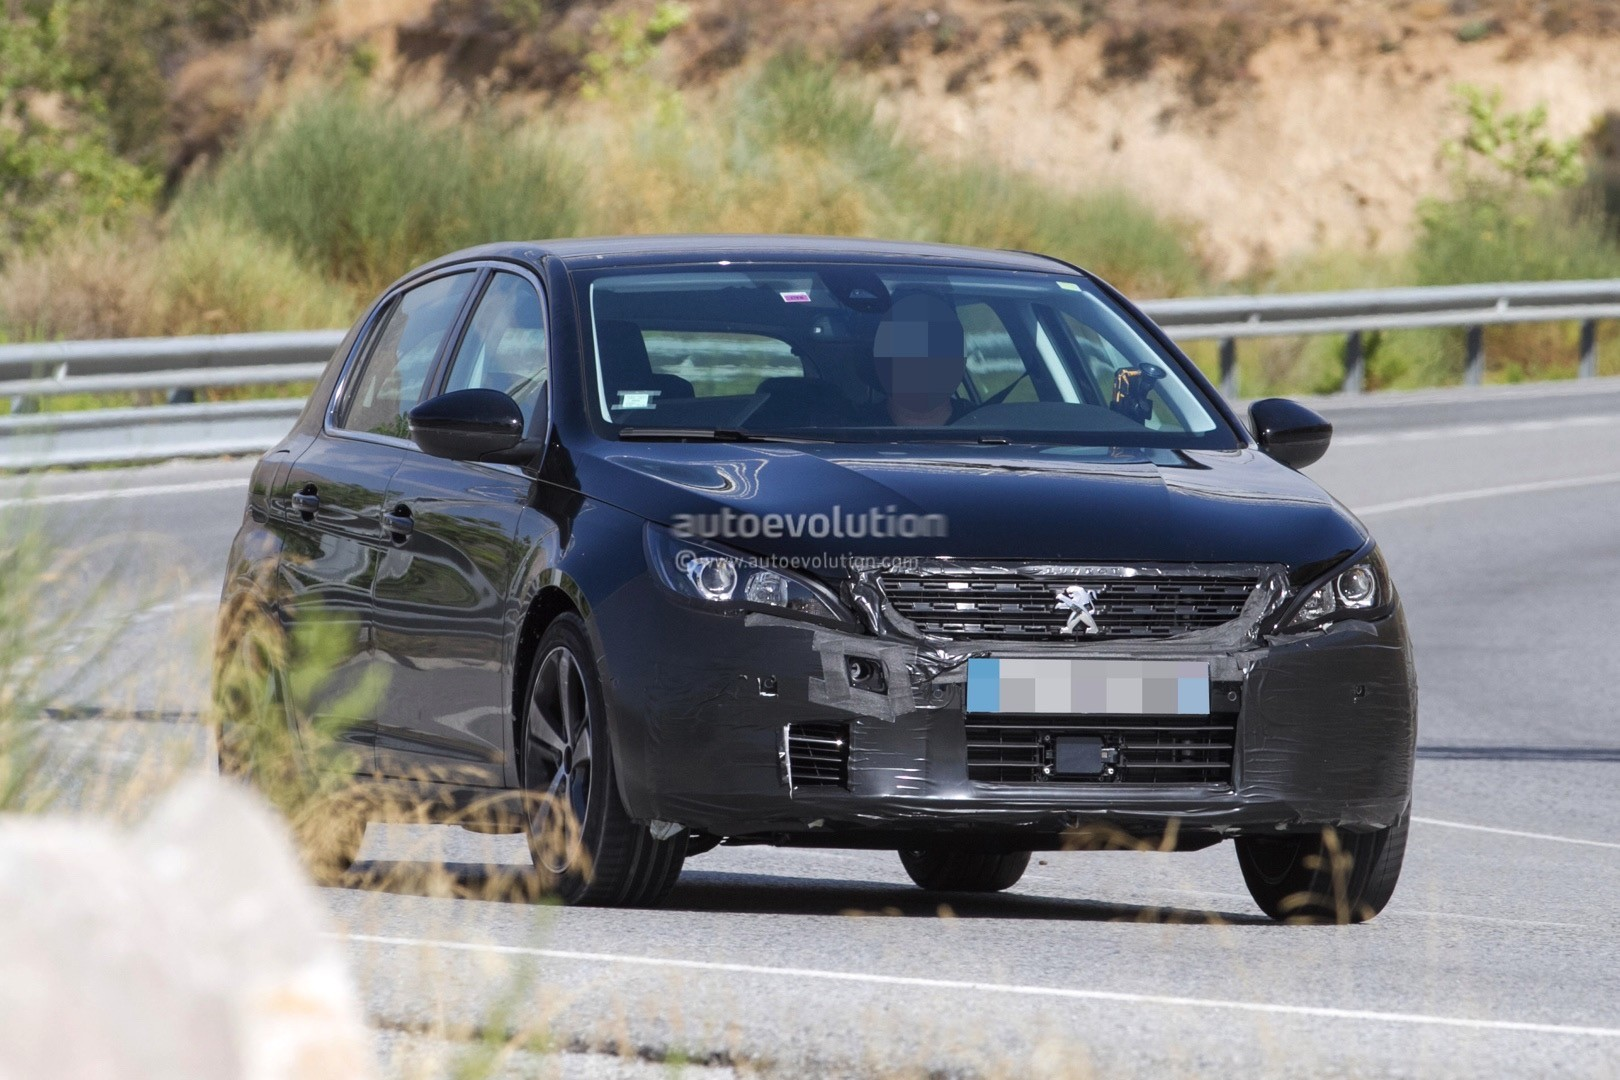 2017 - [Peugeot] 308 II Restylée - Page 11 Peugeot-prepares-to-facelift-308-model-lineup-for-2017_1